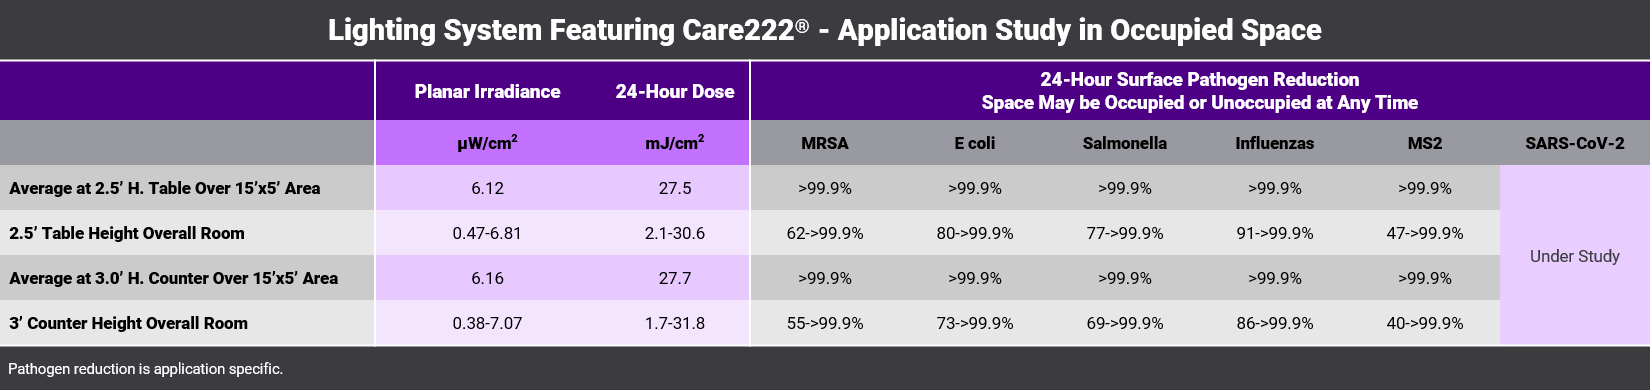 Care222-ApplicationStudy-Table